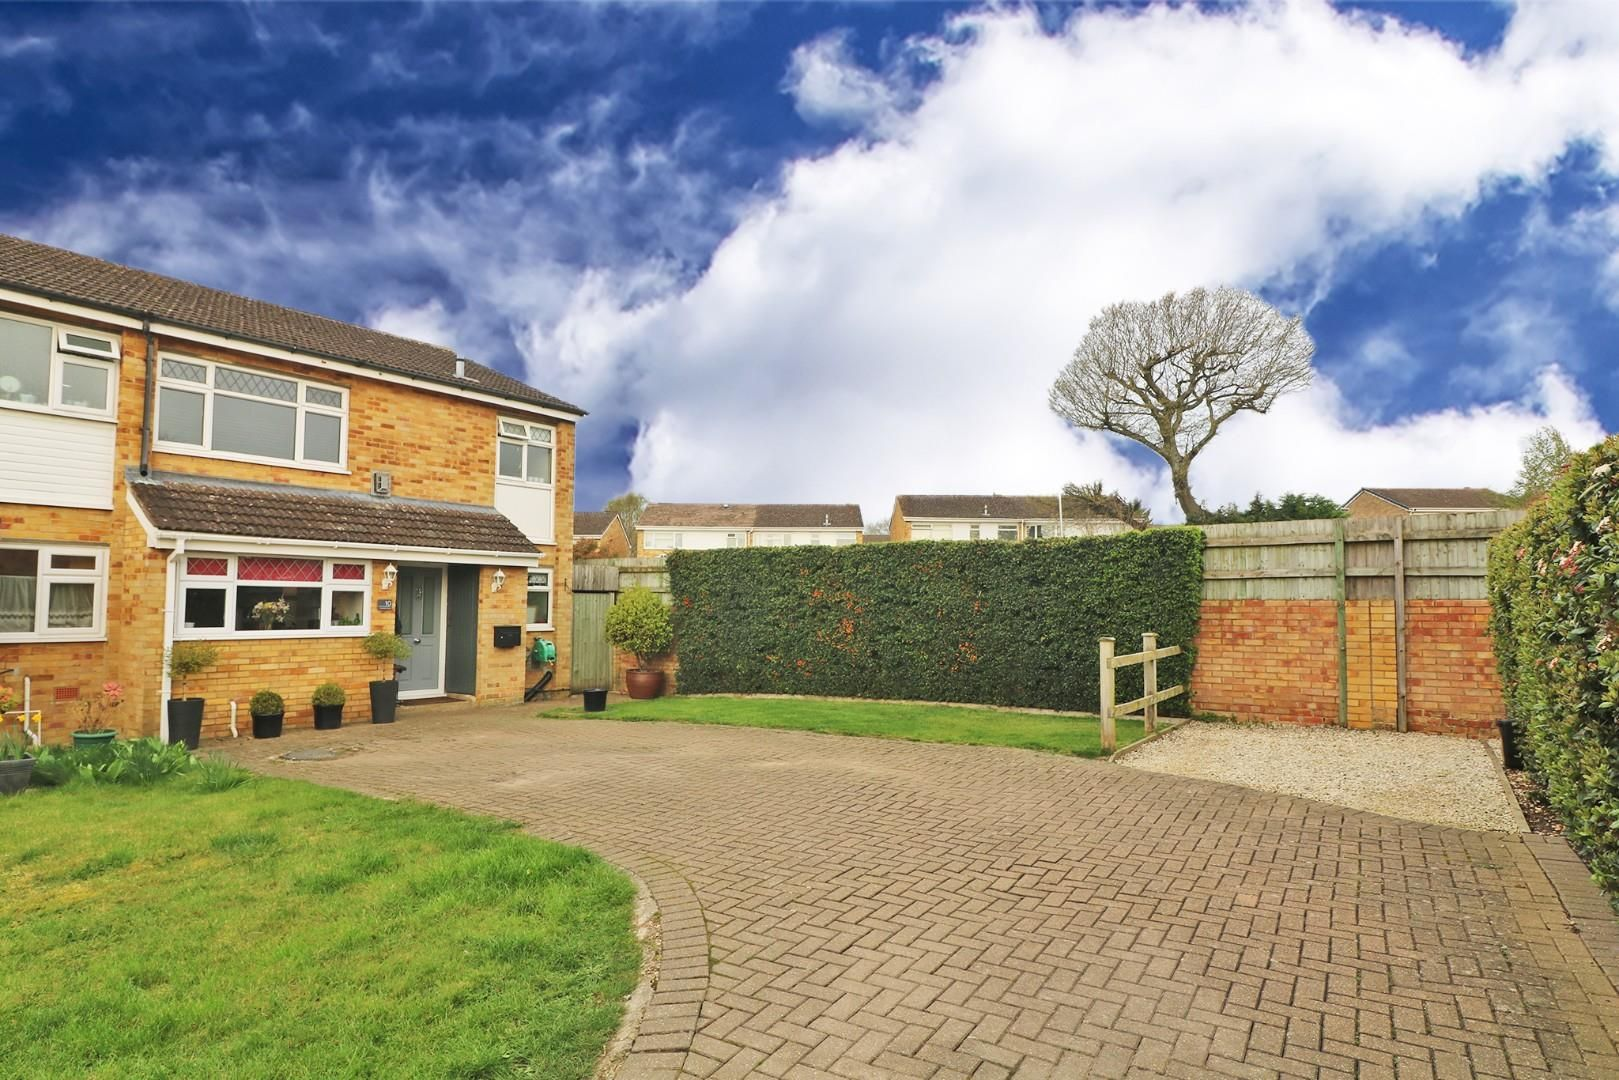 3 bed semi-detached to rent in Caversham  - Property Image 3